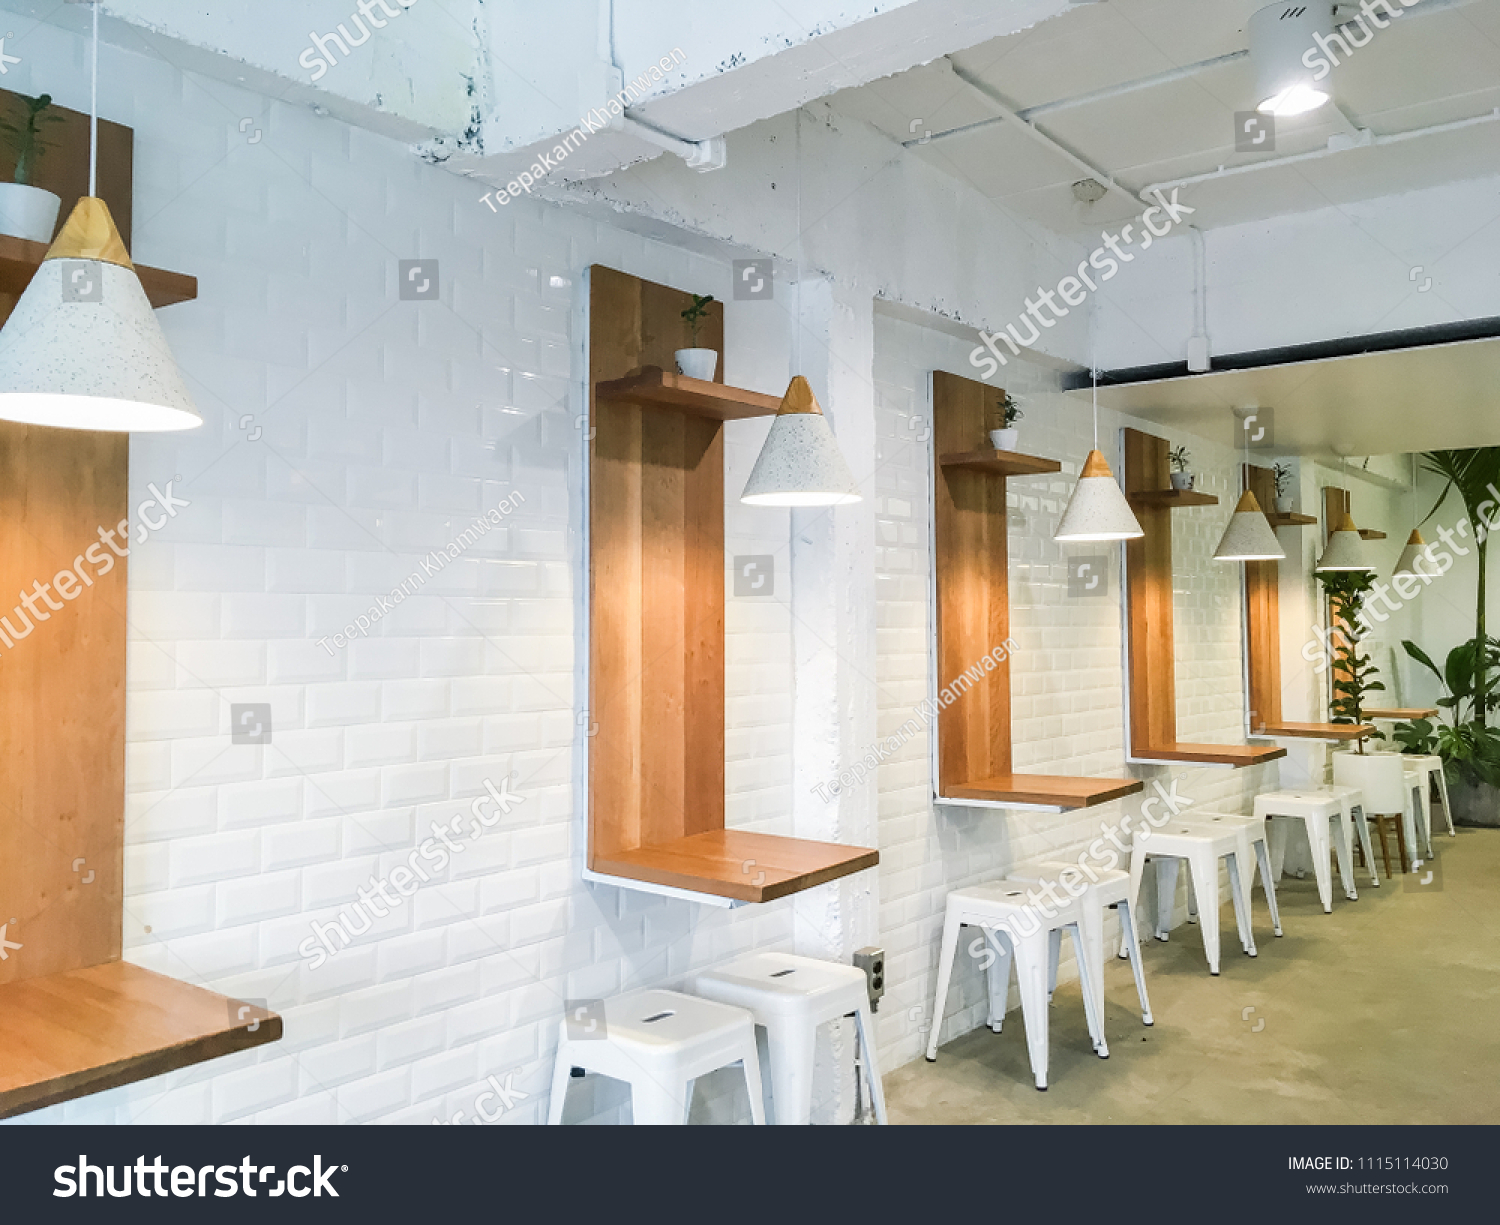 Interior Design Of A Happy Bones Style, Coffee Shop, Cafe. This Look: